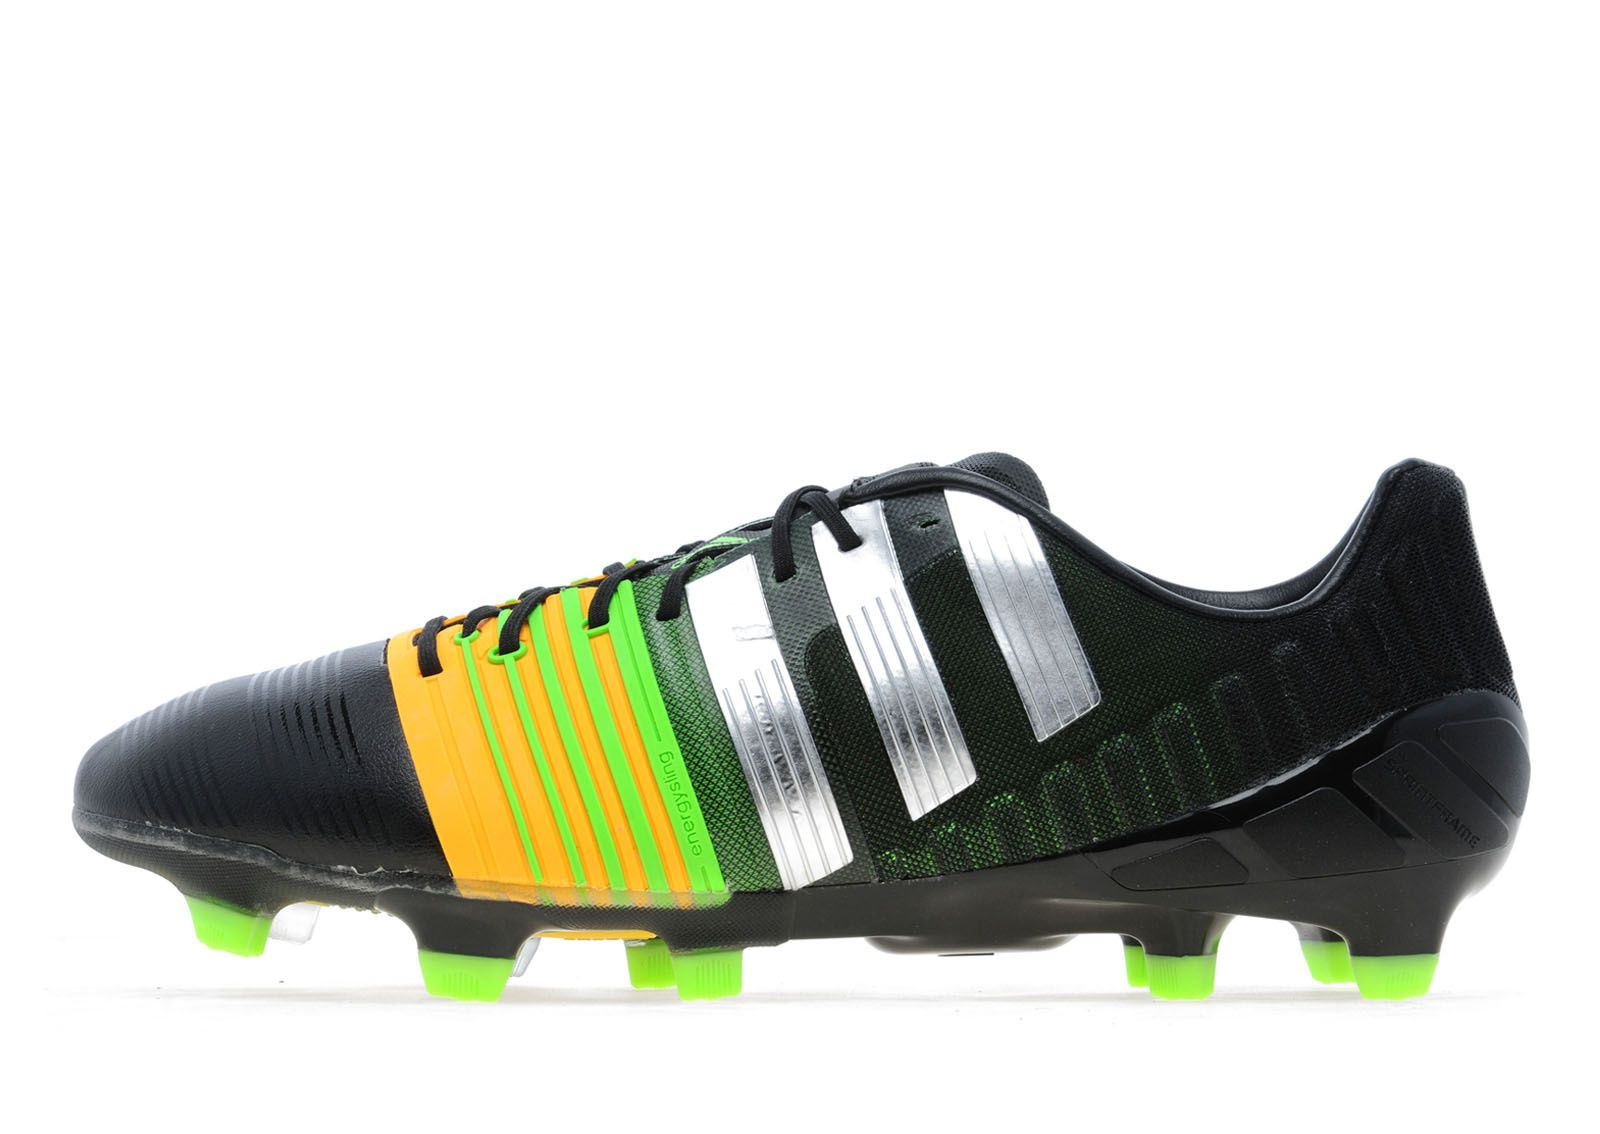 adidas Nitrocharge 1.0 Firm Ground